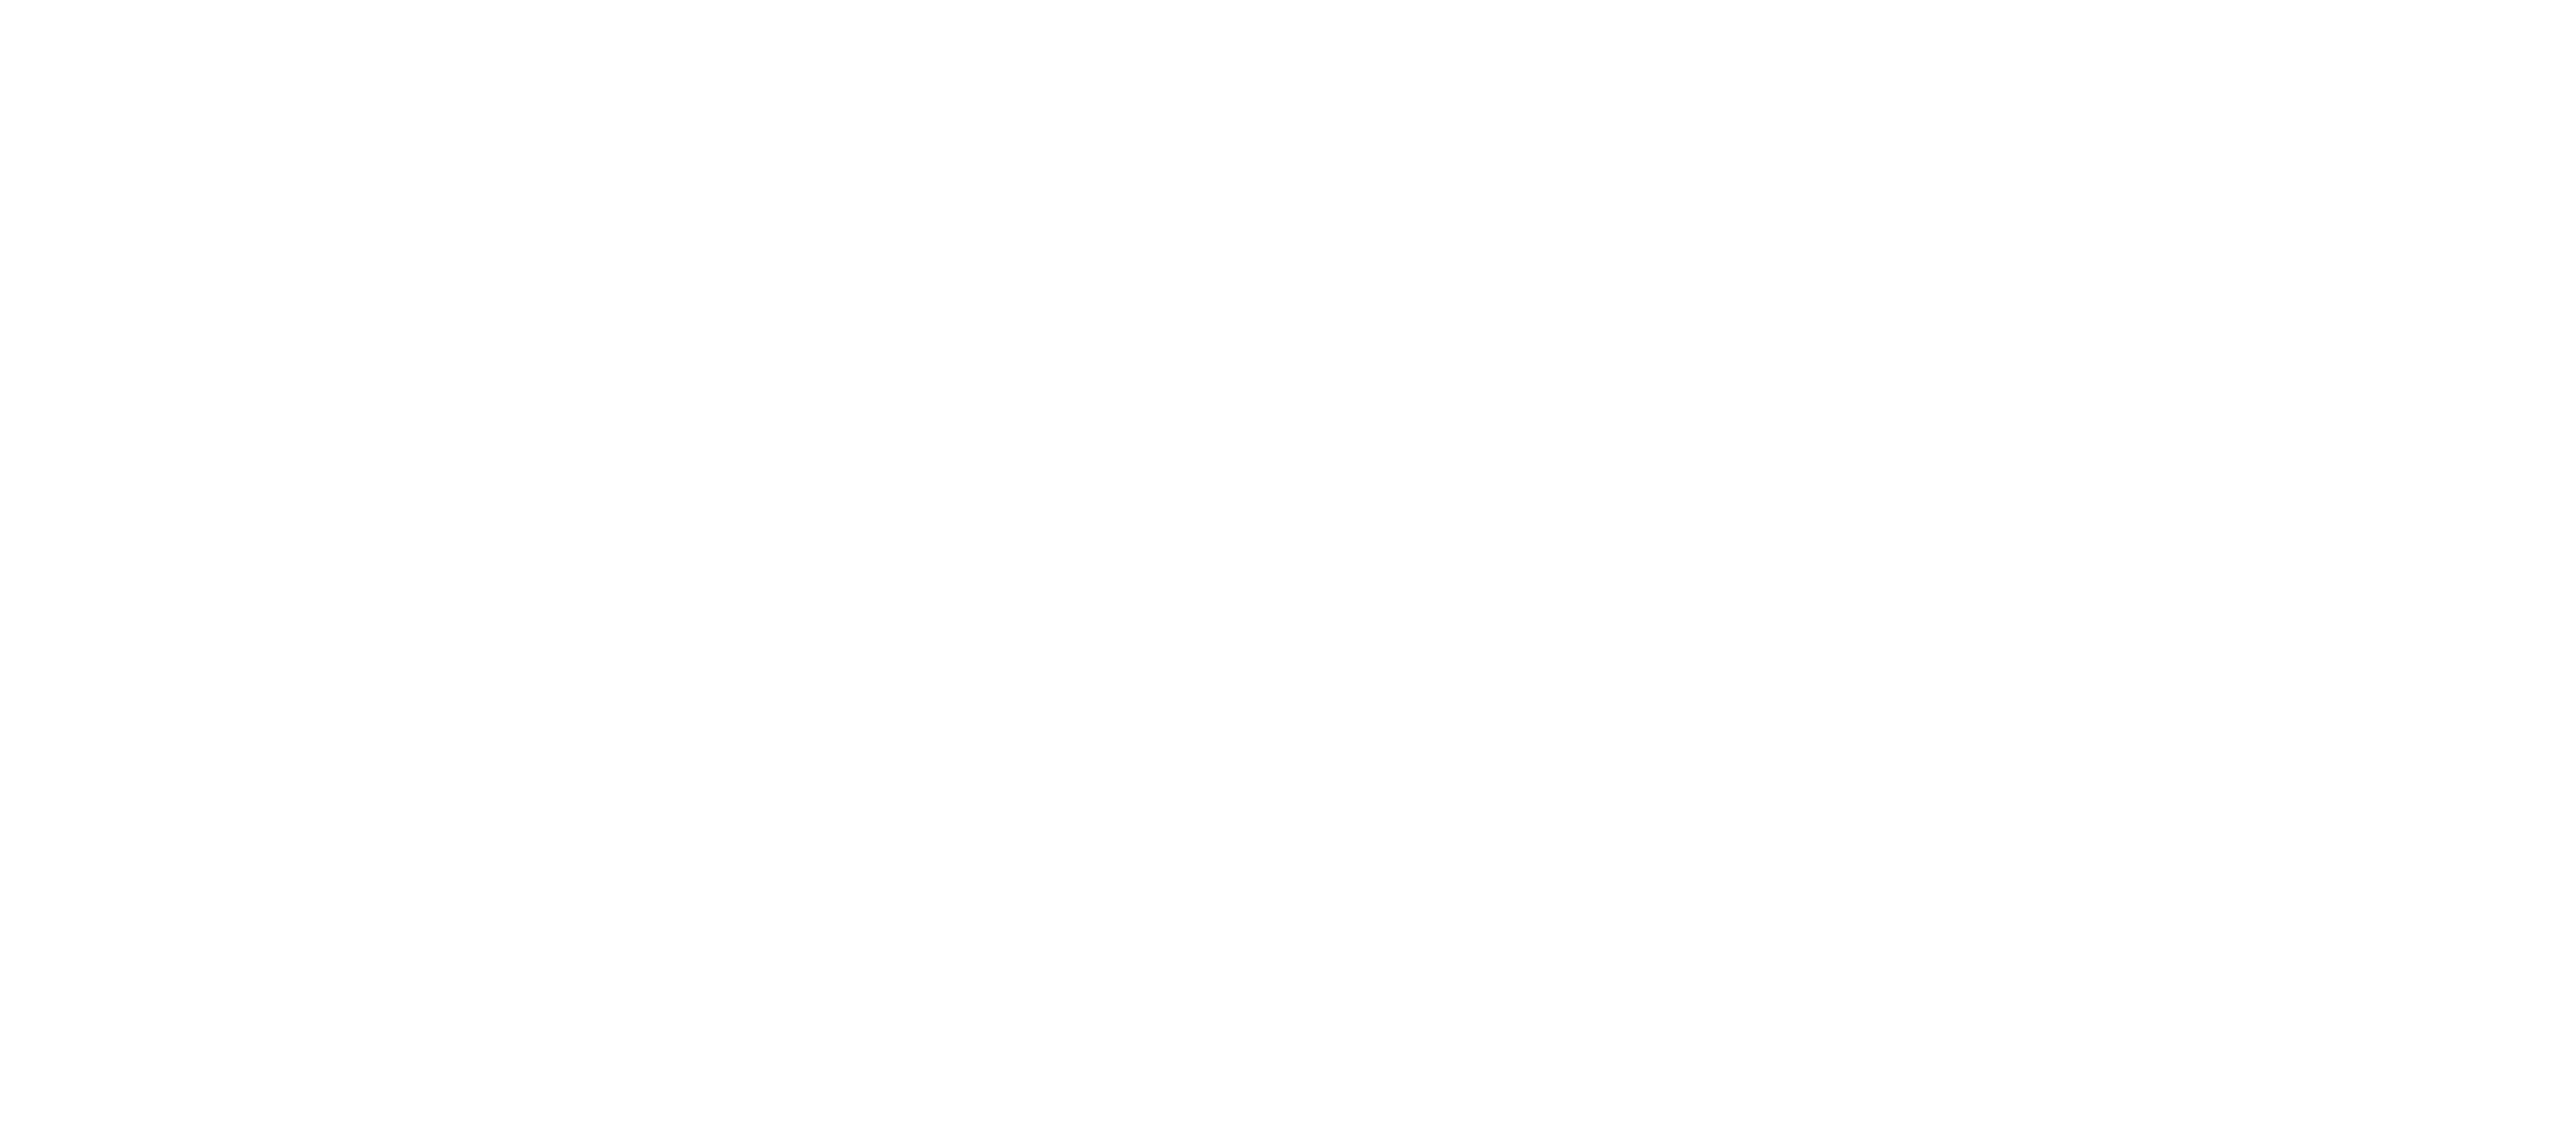 KubeCon + CloudNativeCon Europe 2020 gitlab event image